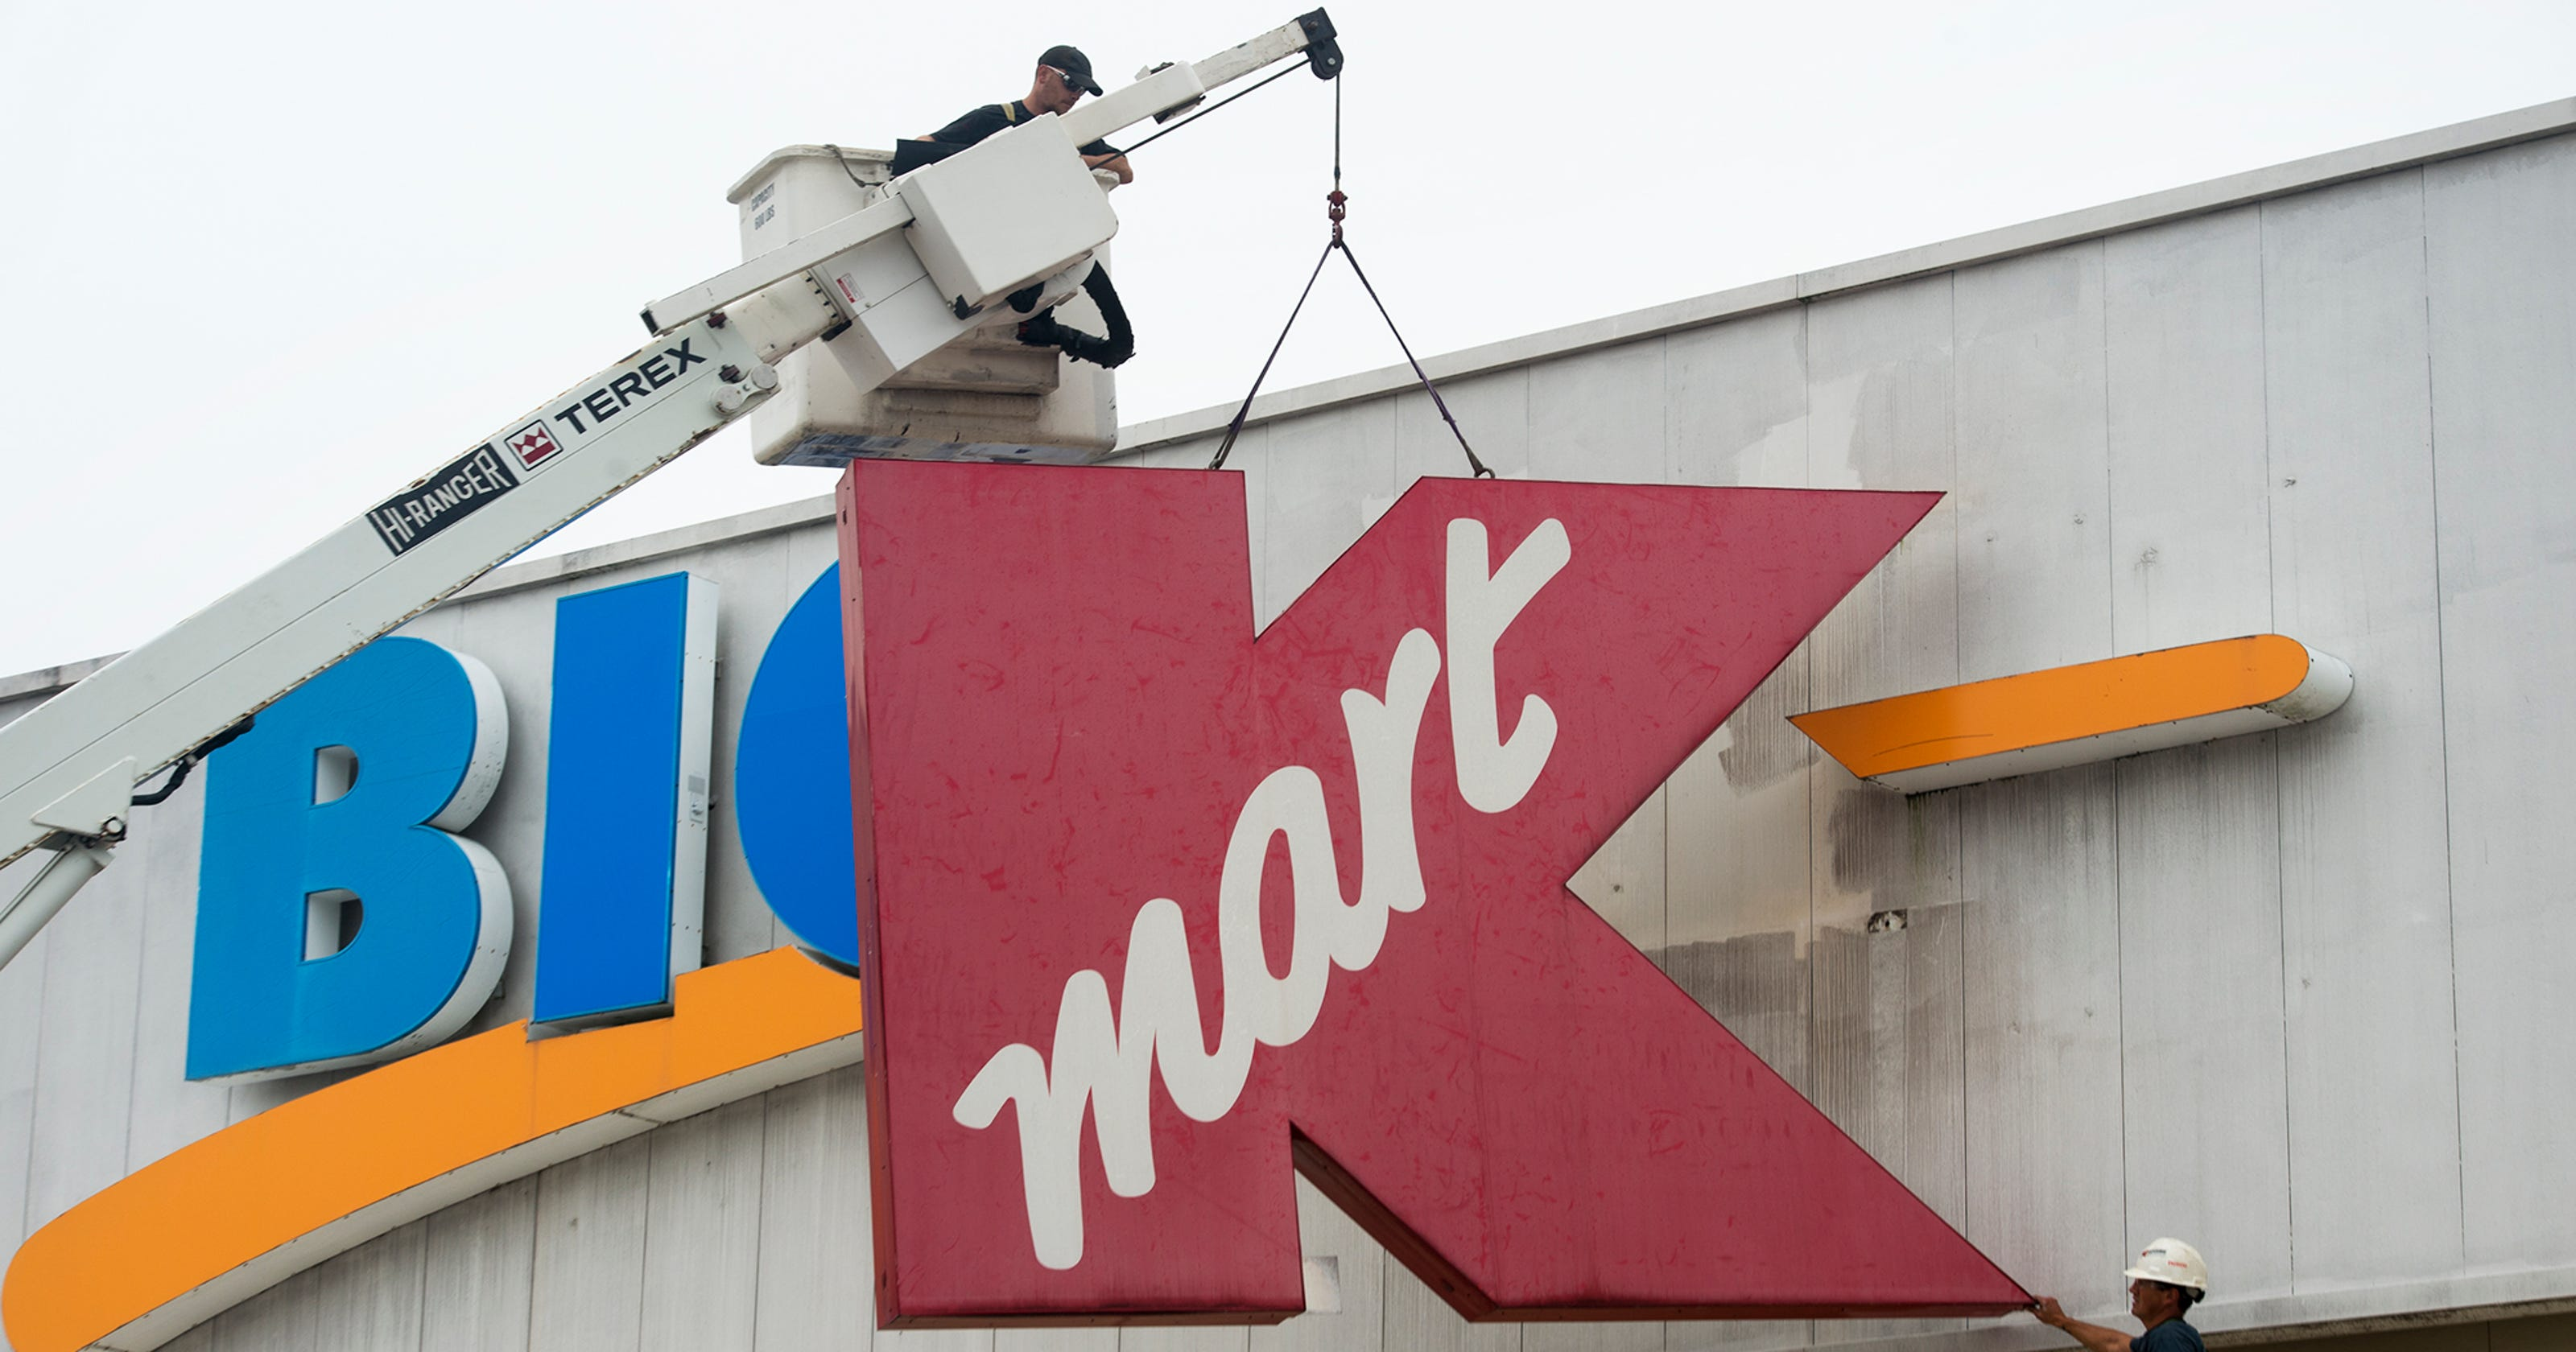 Kmart store on Haines Road in York, Pa., has closed